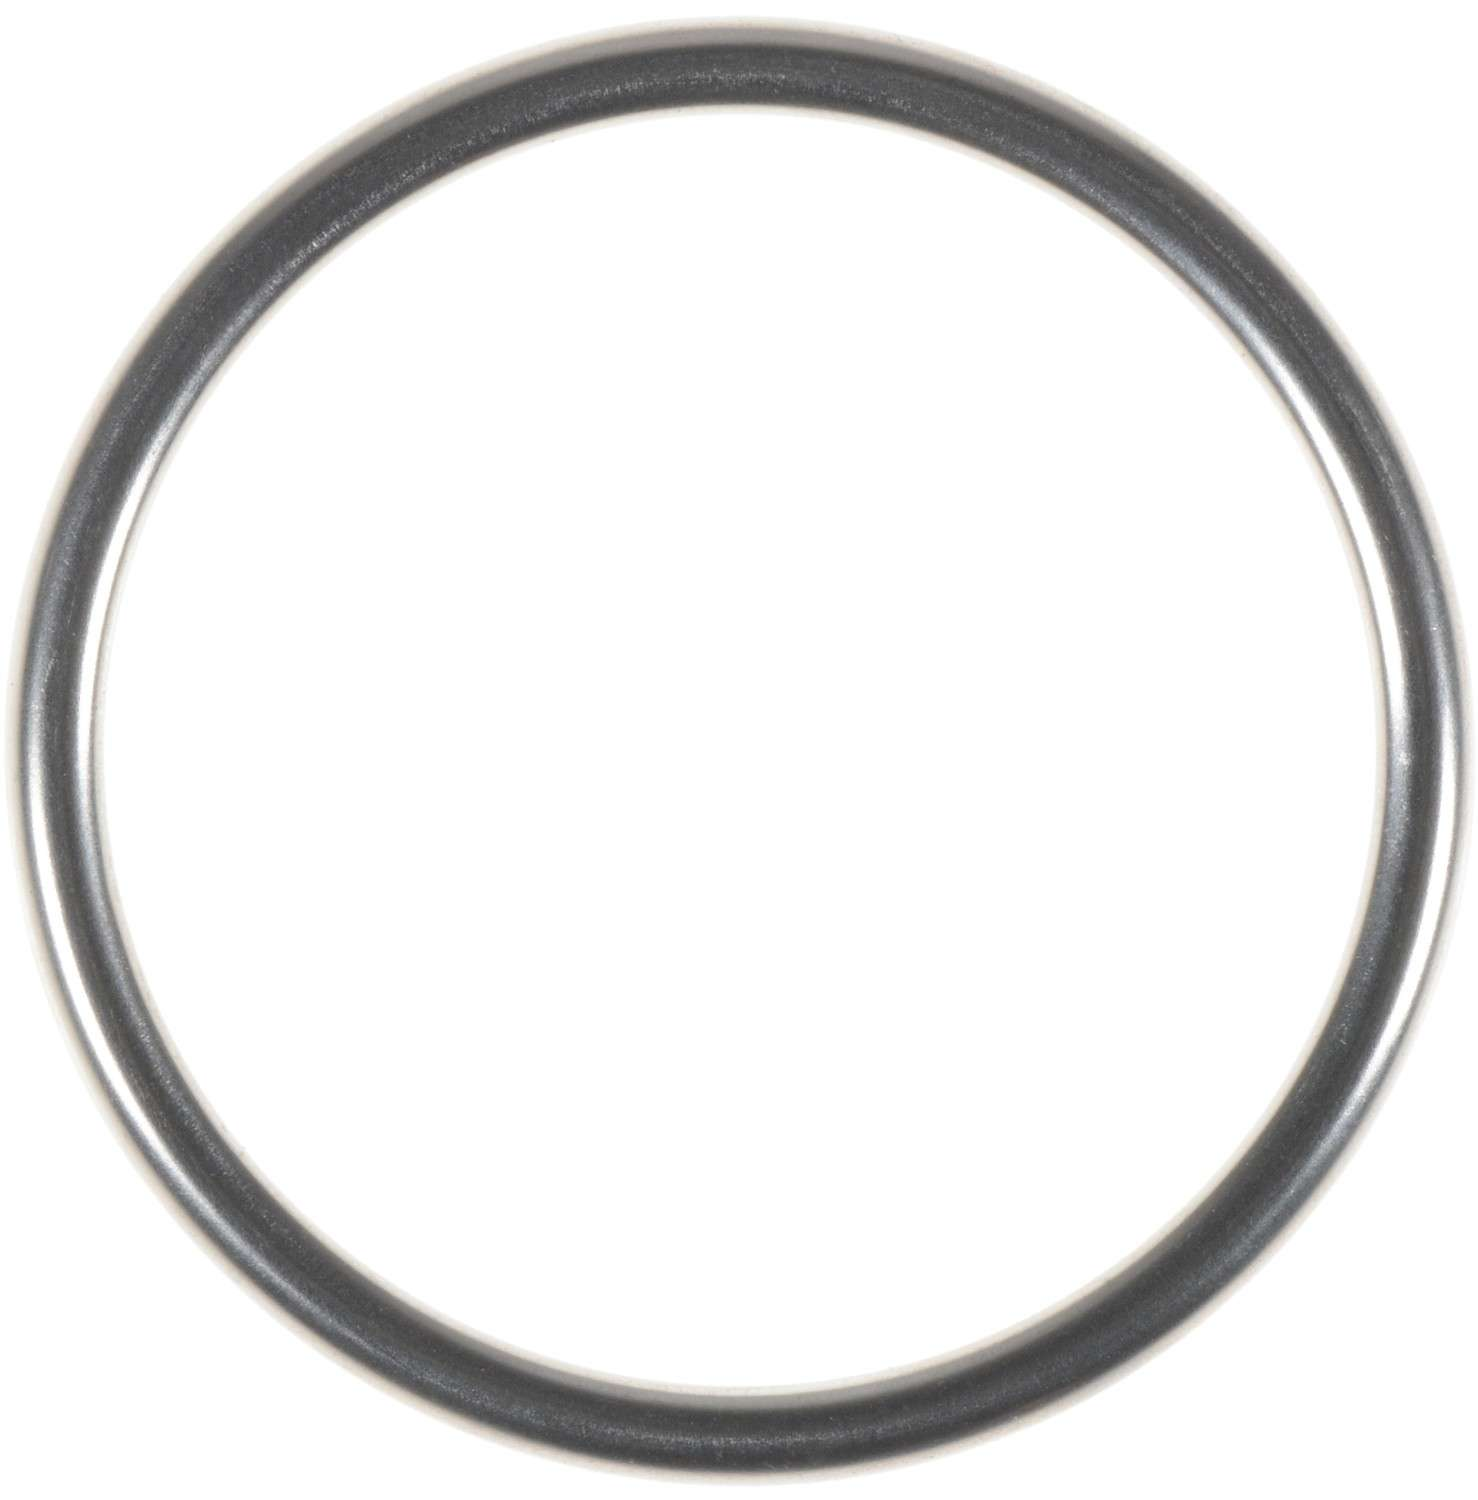 MAHLE ORIGINAL - Catalytic Converter Gasket - MHL F31814